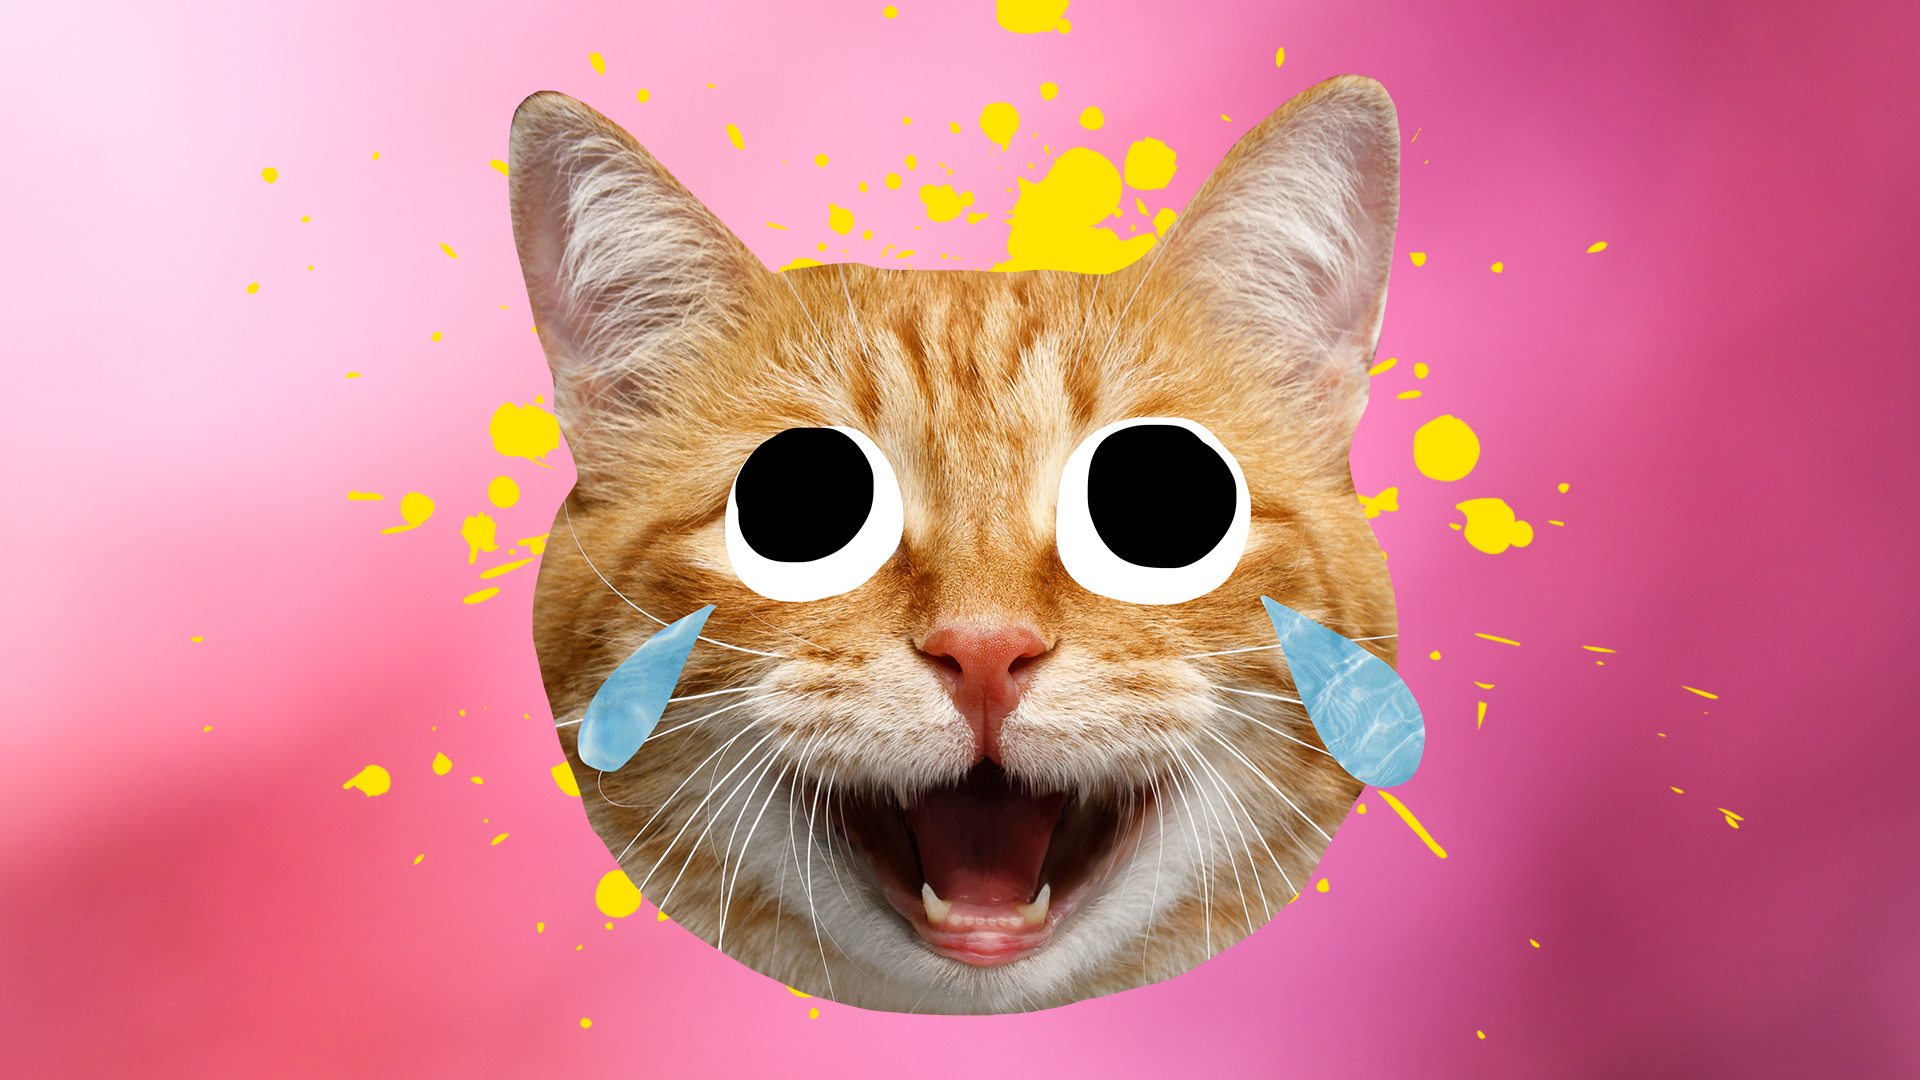 A laughing ginger cat